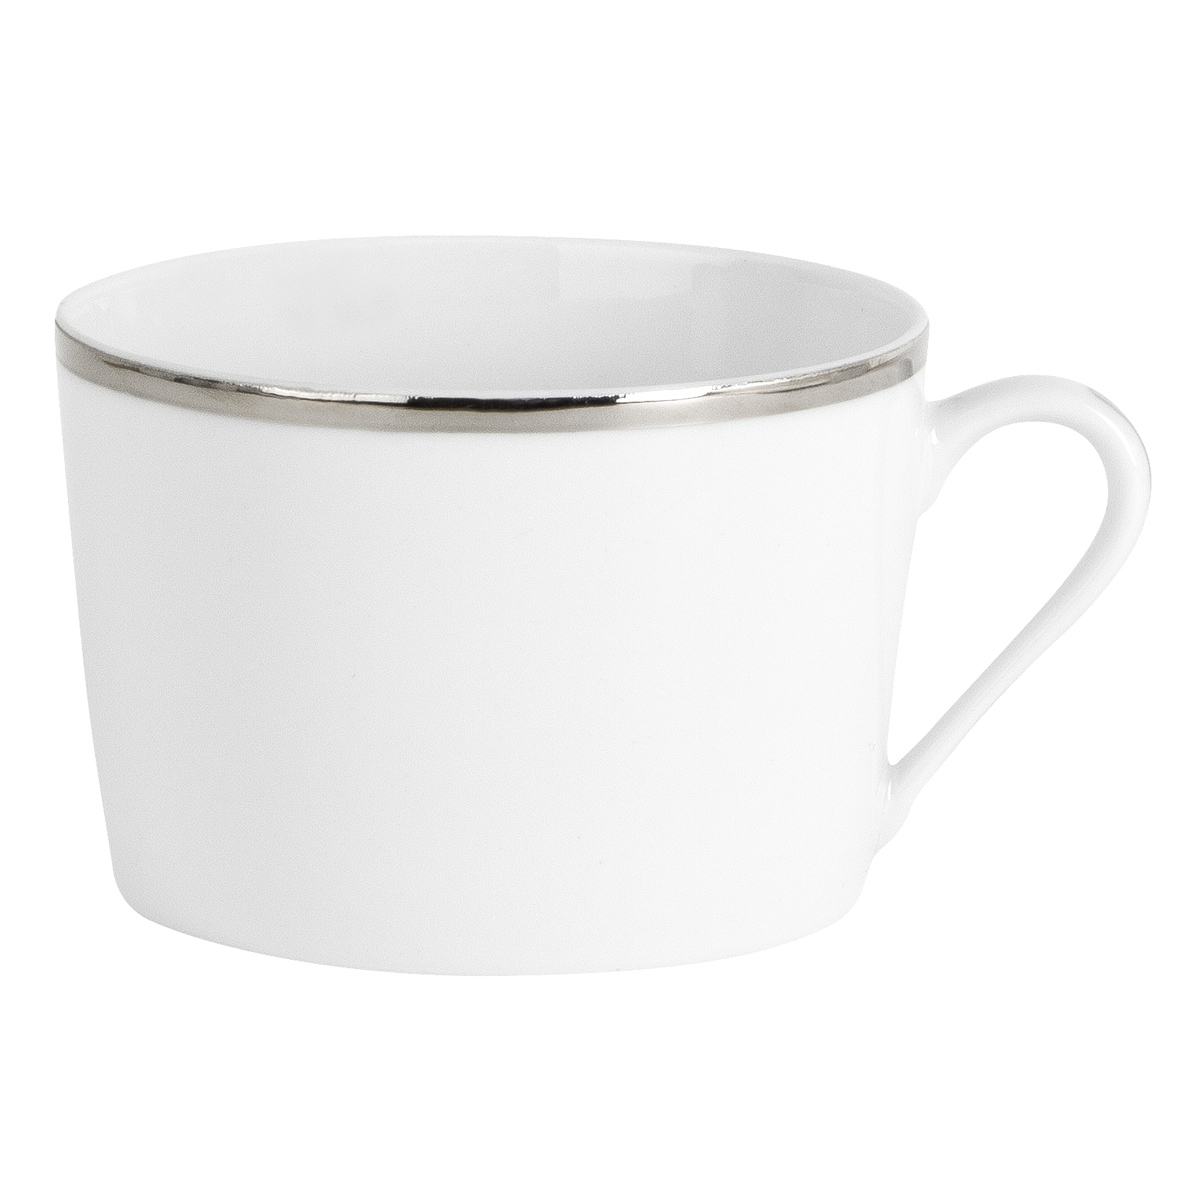 Galon platine soucoupe a the ronde 15 cm les tasses - La table parisienne angouleme ...